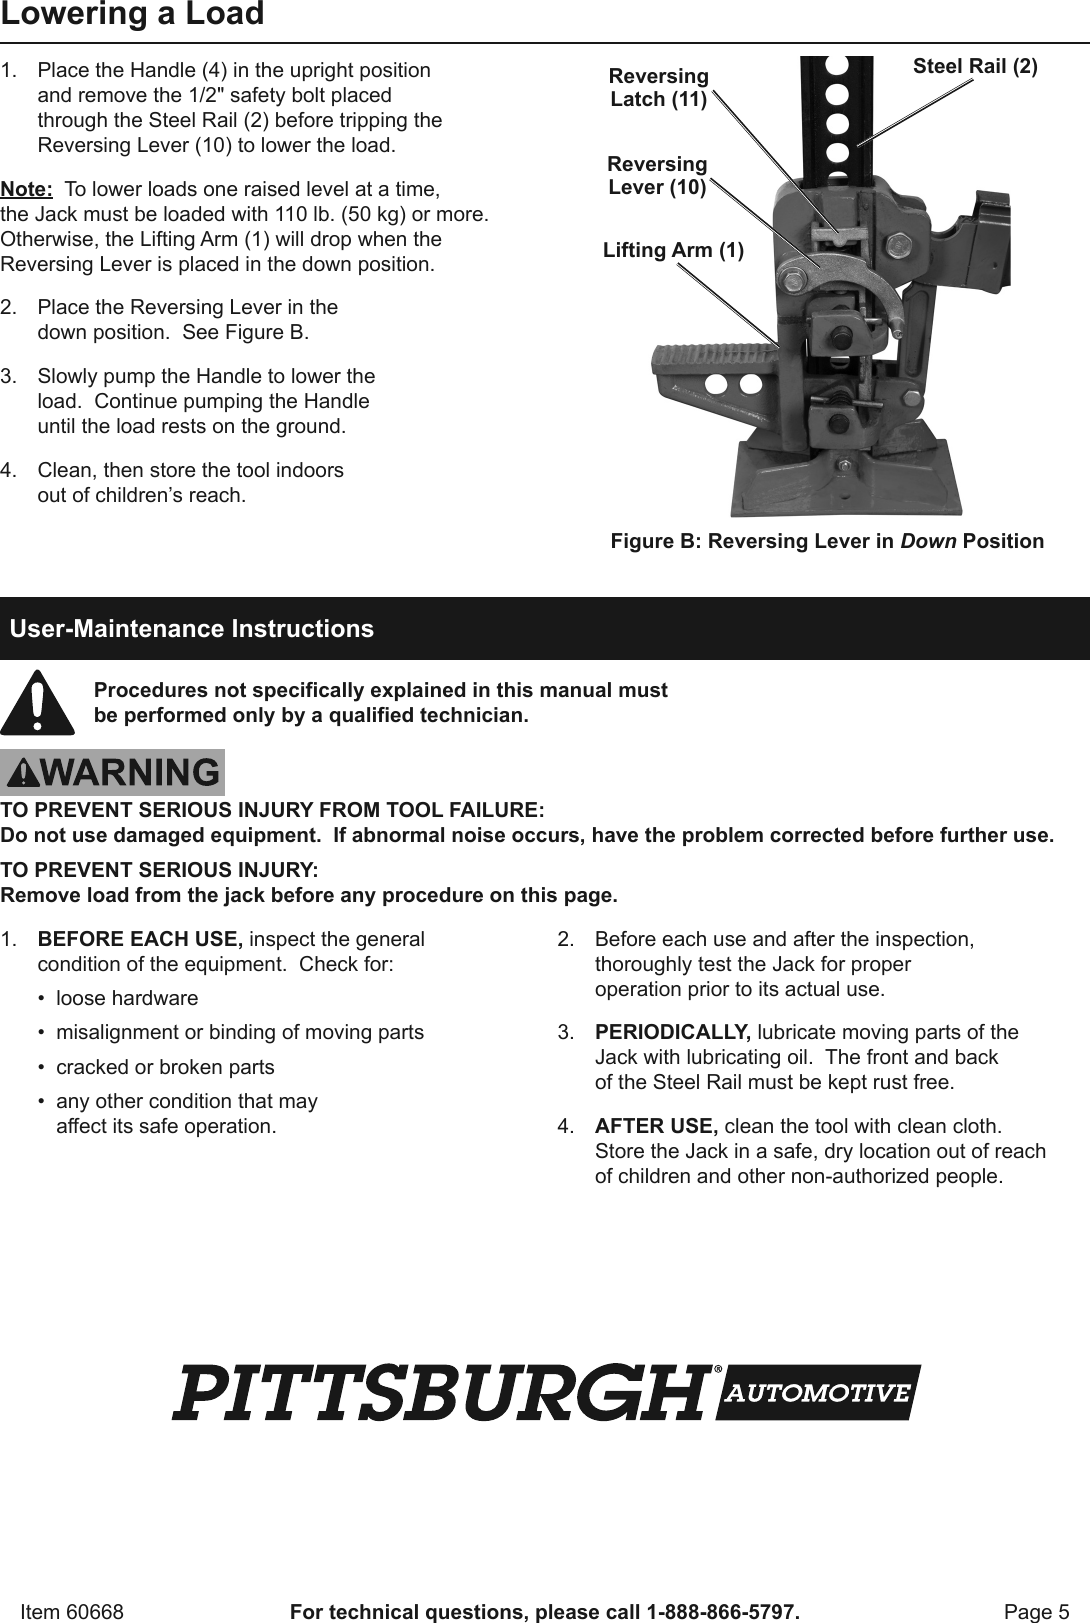 Manual For The 60668 42 In  High Lift Farm Jack